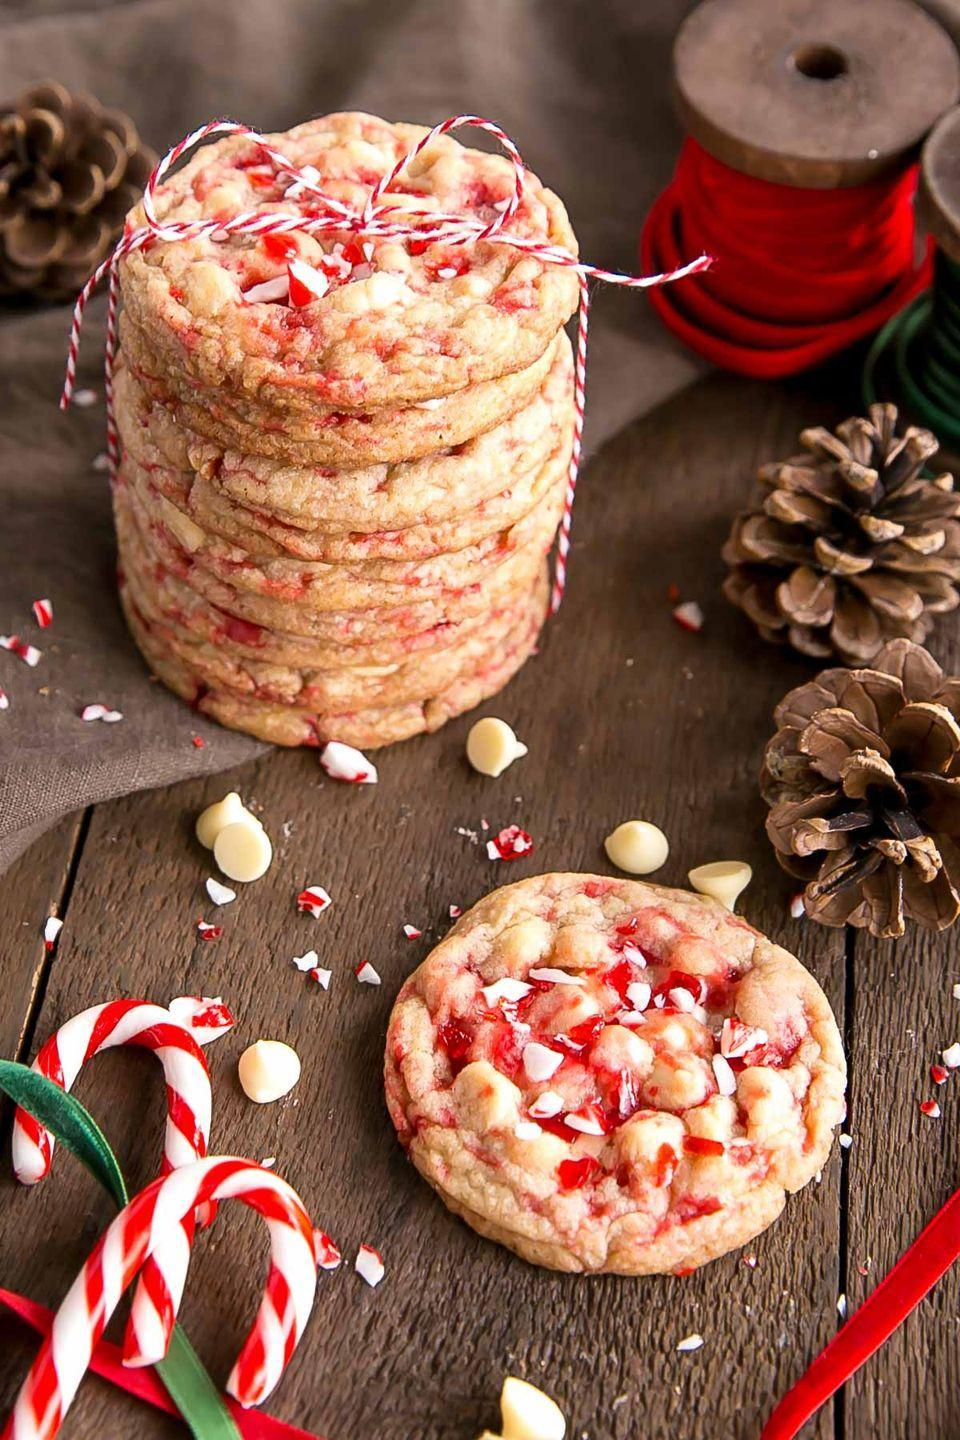 """<p>White chocolate adds just the right amount of sweetness to this no-chill dough.</p><p><strong>Get the recipe at <a href=""""https://livforcake.com/white-chocolate-candy-cane-cookies/"""" rel=""""nofollow noopener"""" target=""""_blank"""" data-ylk=""""slk:Liv for Cake"""" class=""""link rapid-noclick-resp"""">Liv for Cake</a>.</strong></p>"""